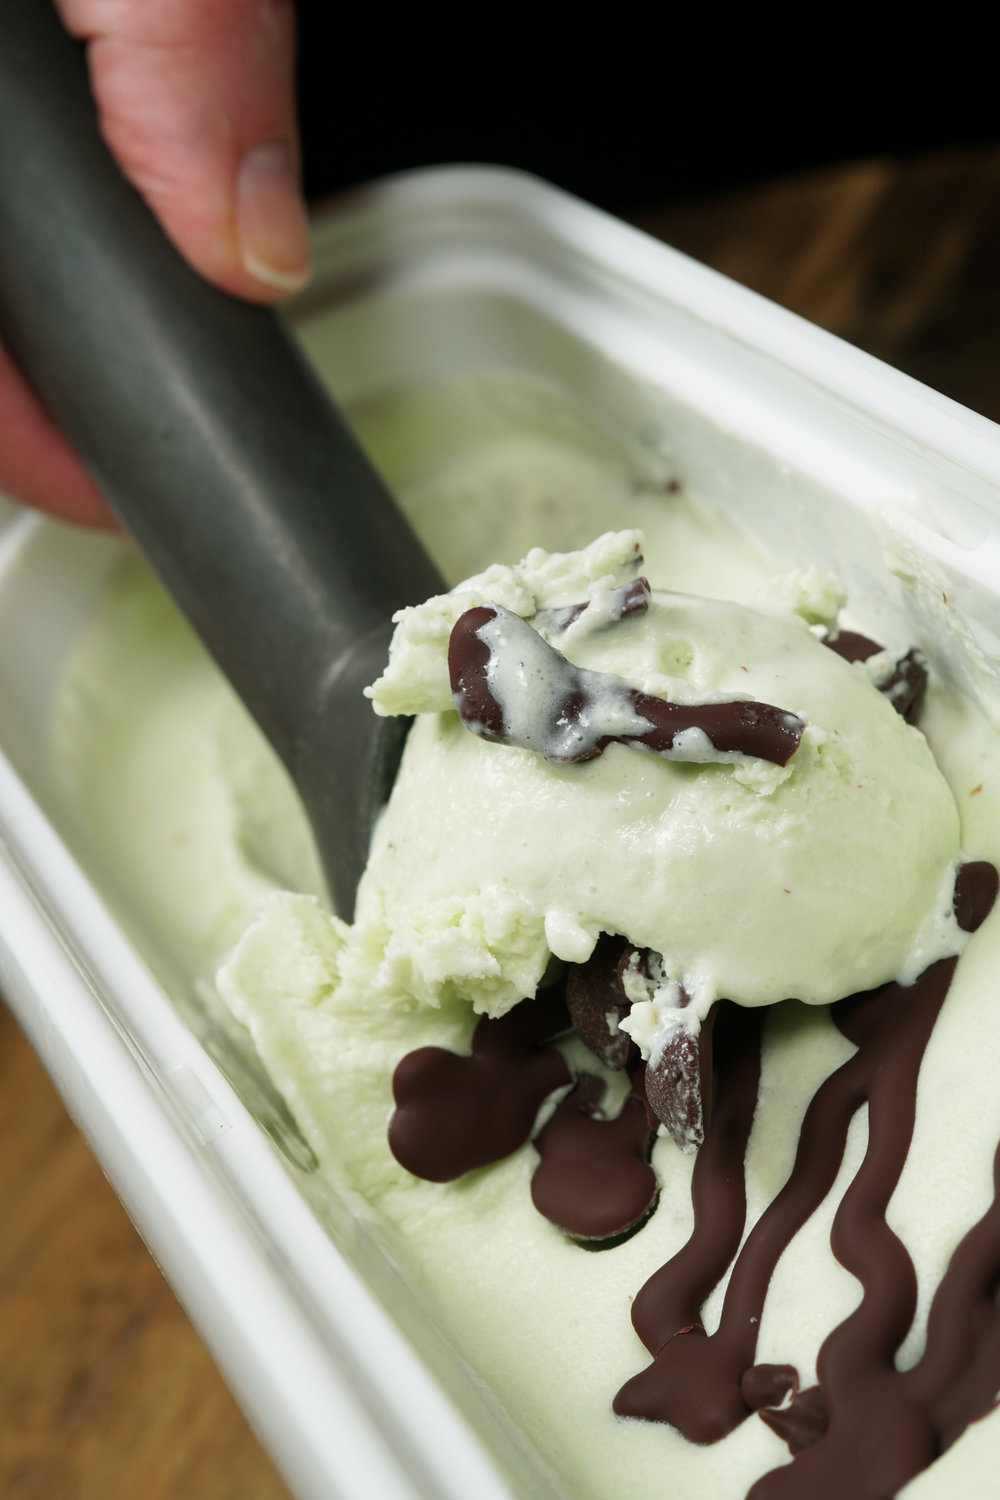 Mint Chocolate Ice Cream C.jpg